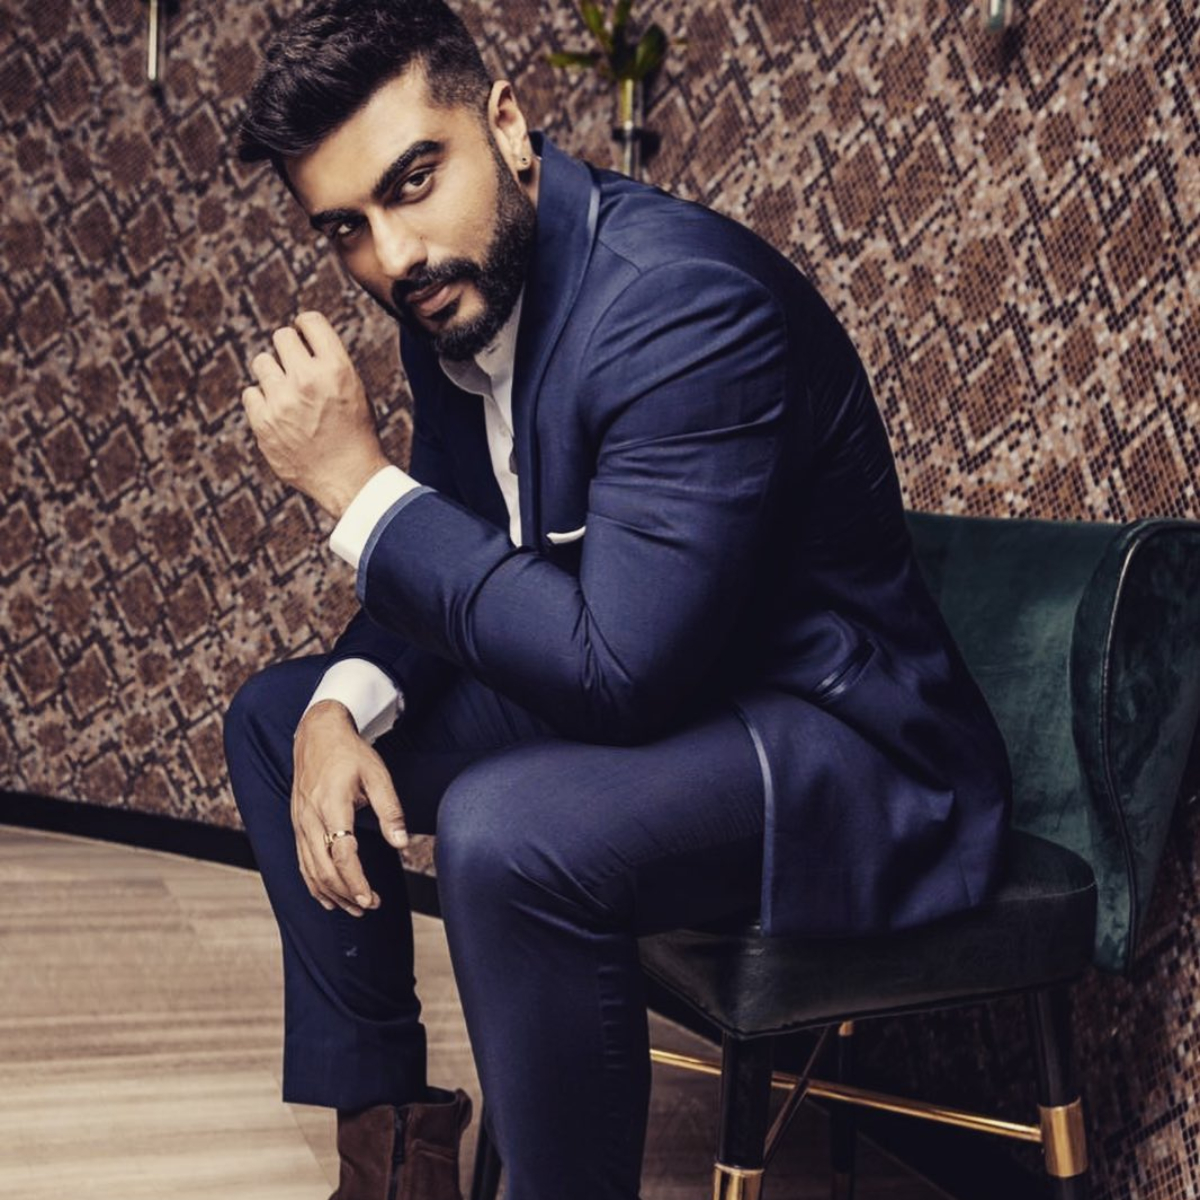 Arjun Kapoor to feature in a creature film based on crocodiles? Find Out